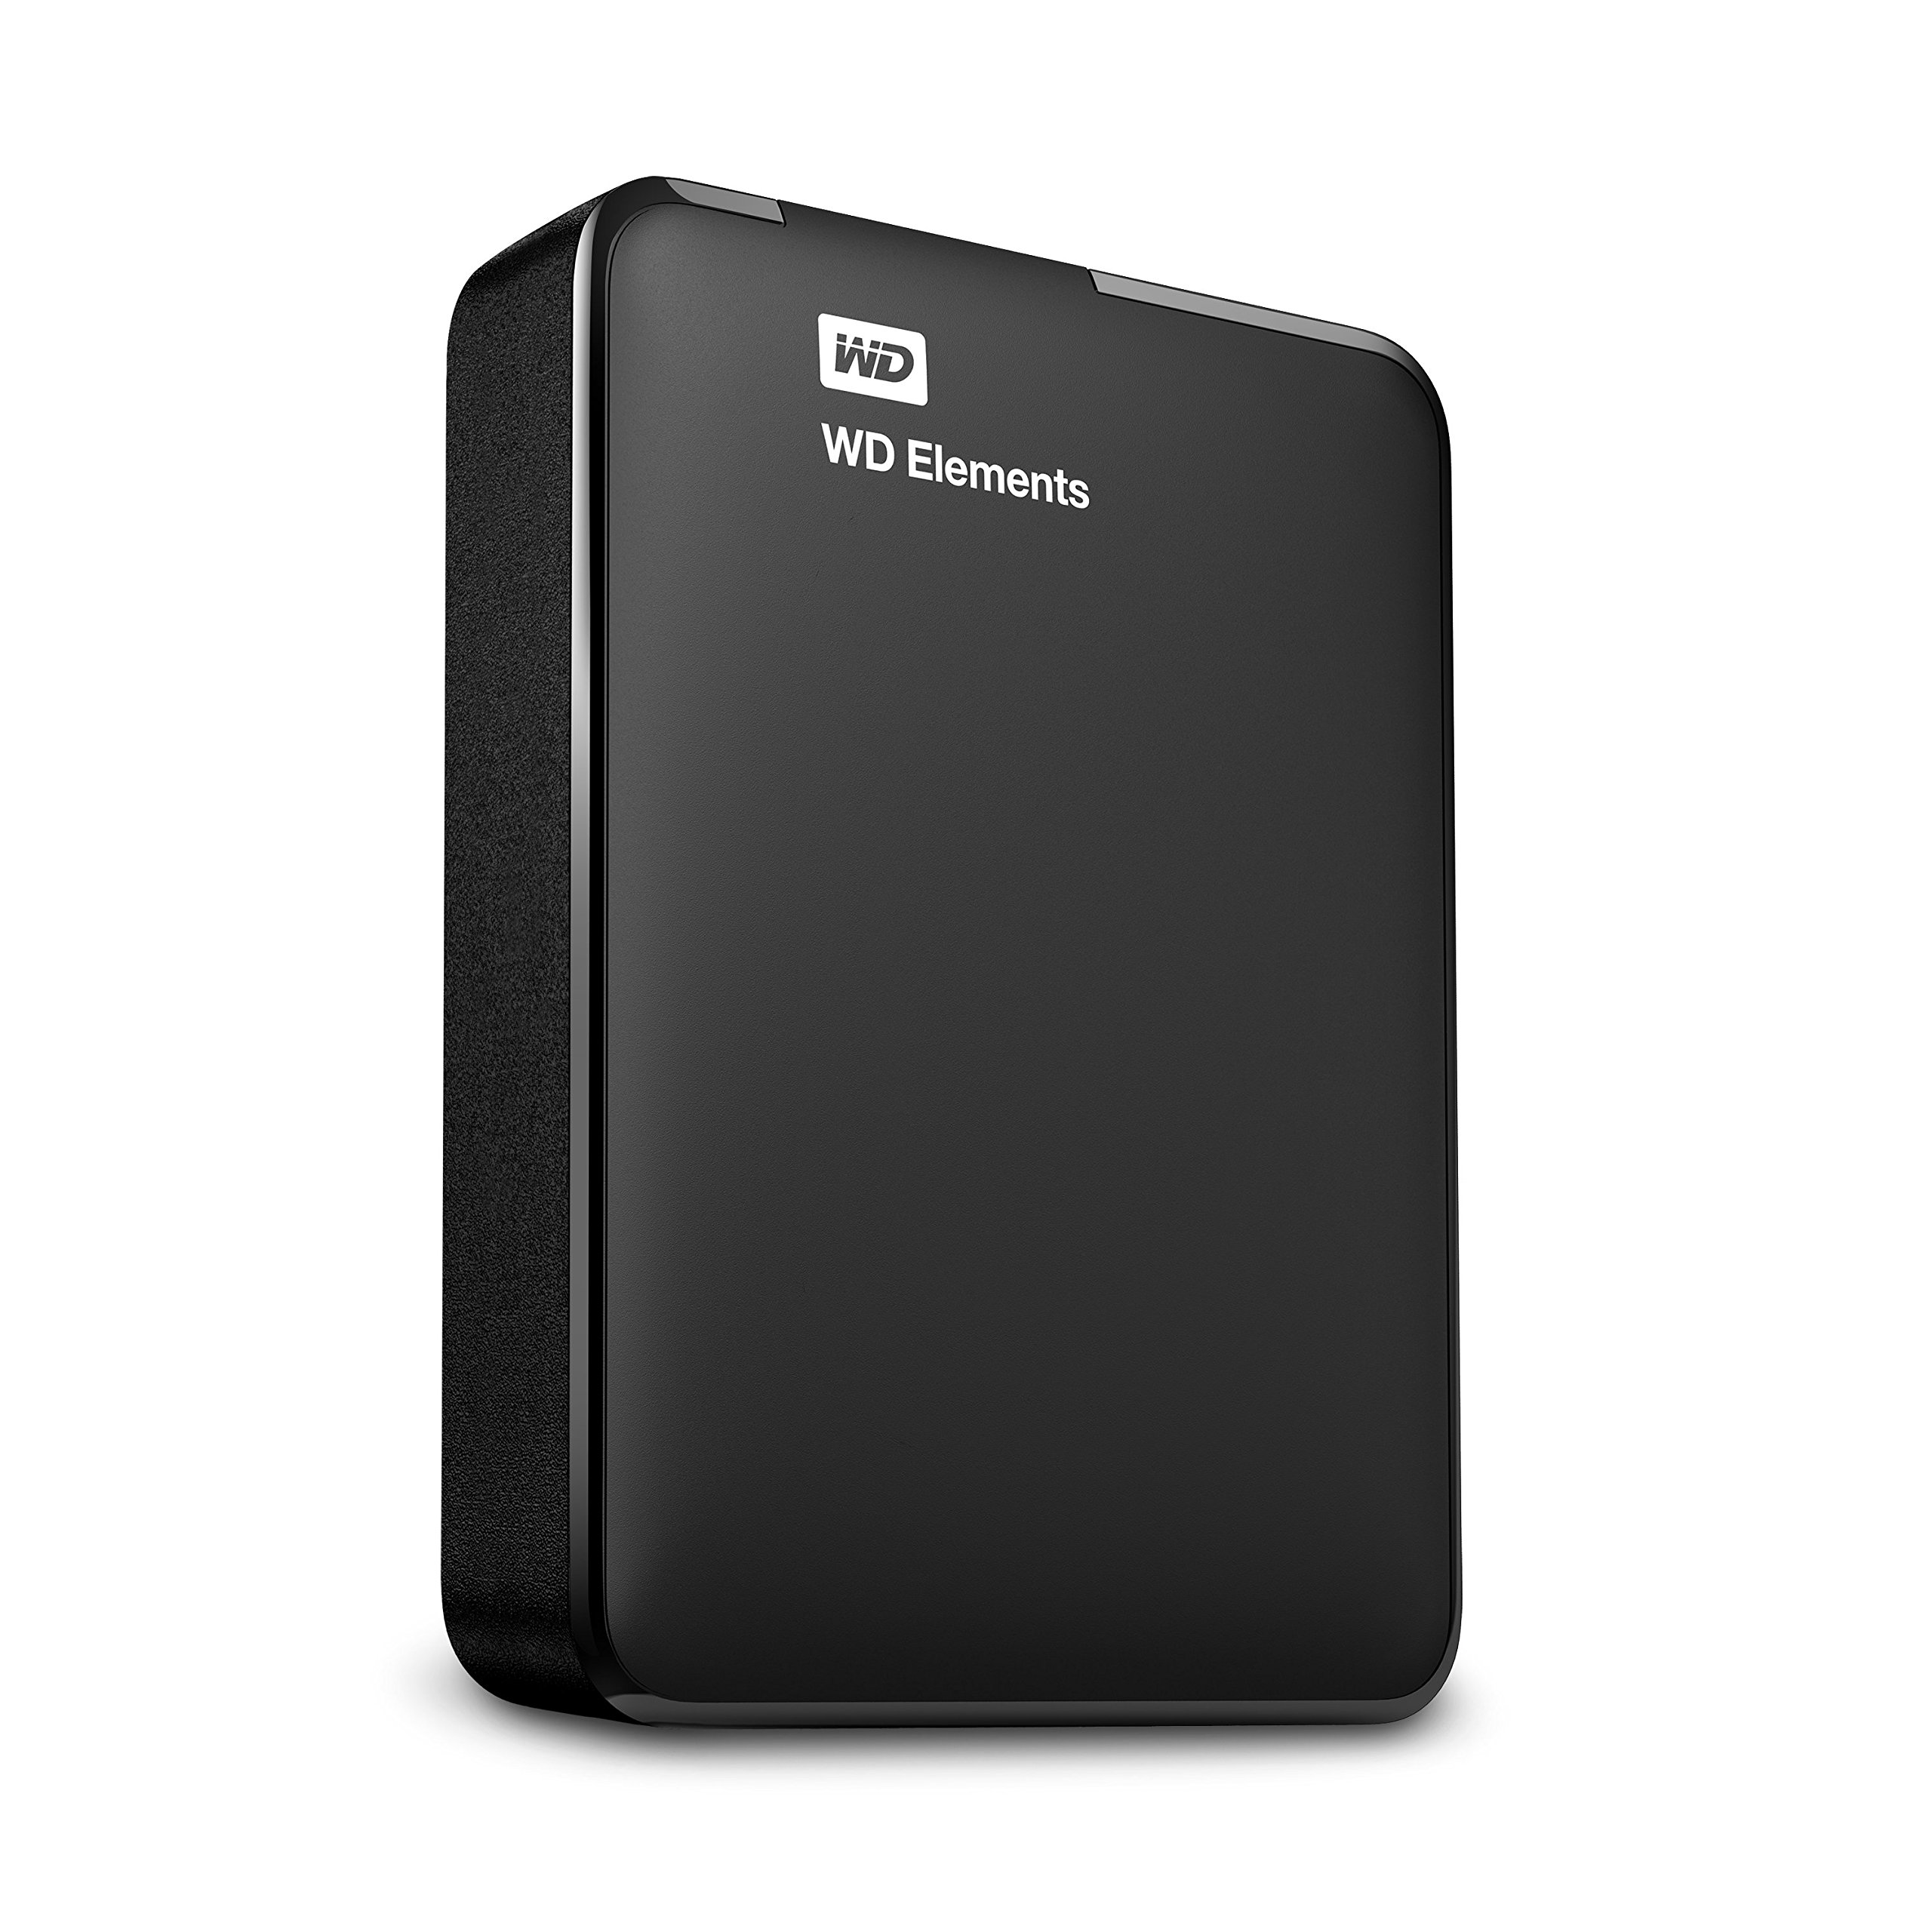 WD Elements Portable External Hard Drive 3Tb Usb 3.0 Backup Storage Best Price